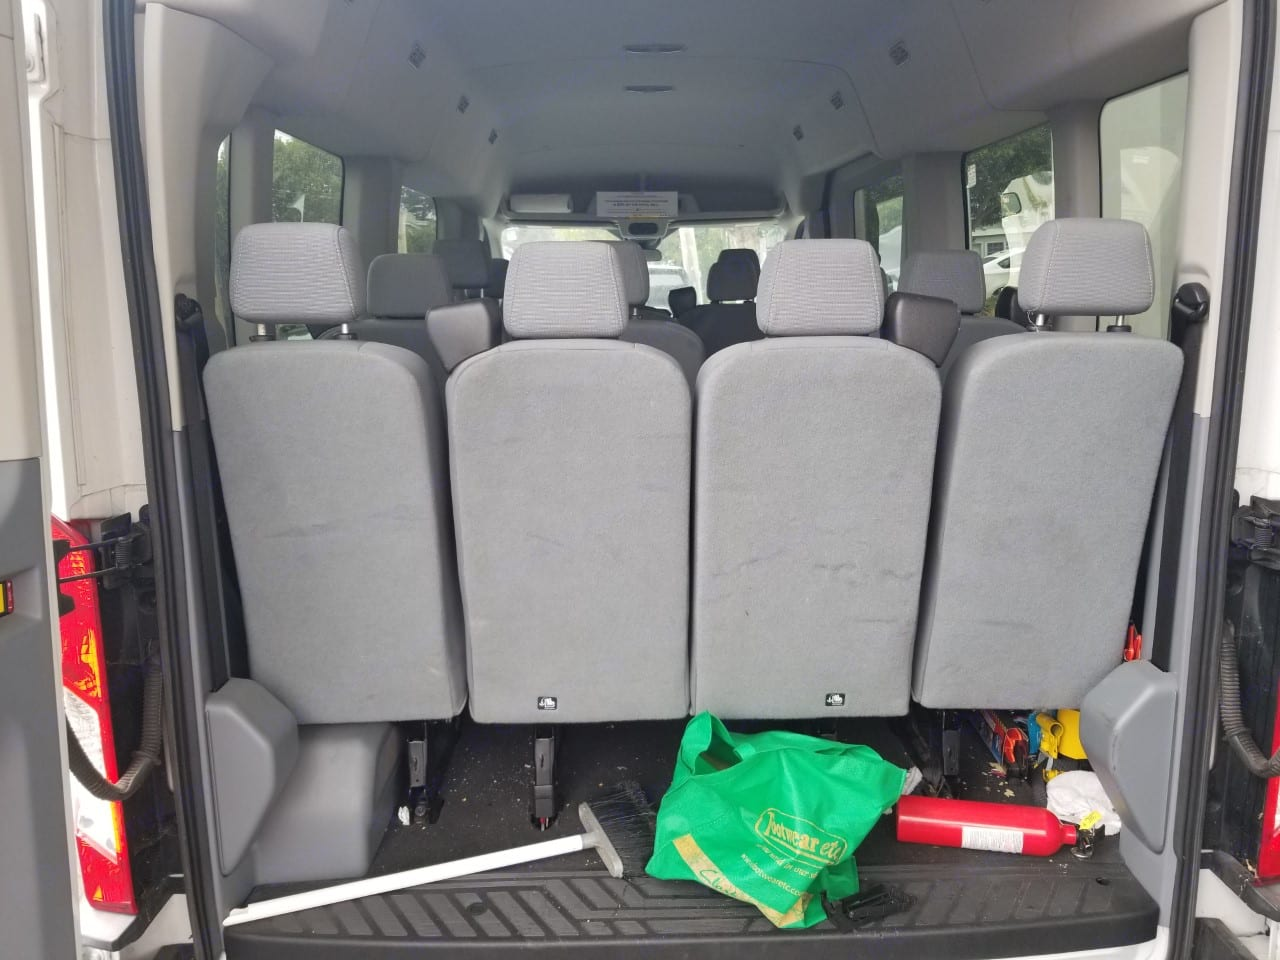 View inside from behind. Ford Transit 2017